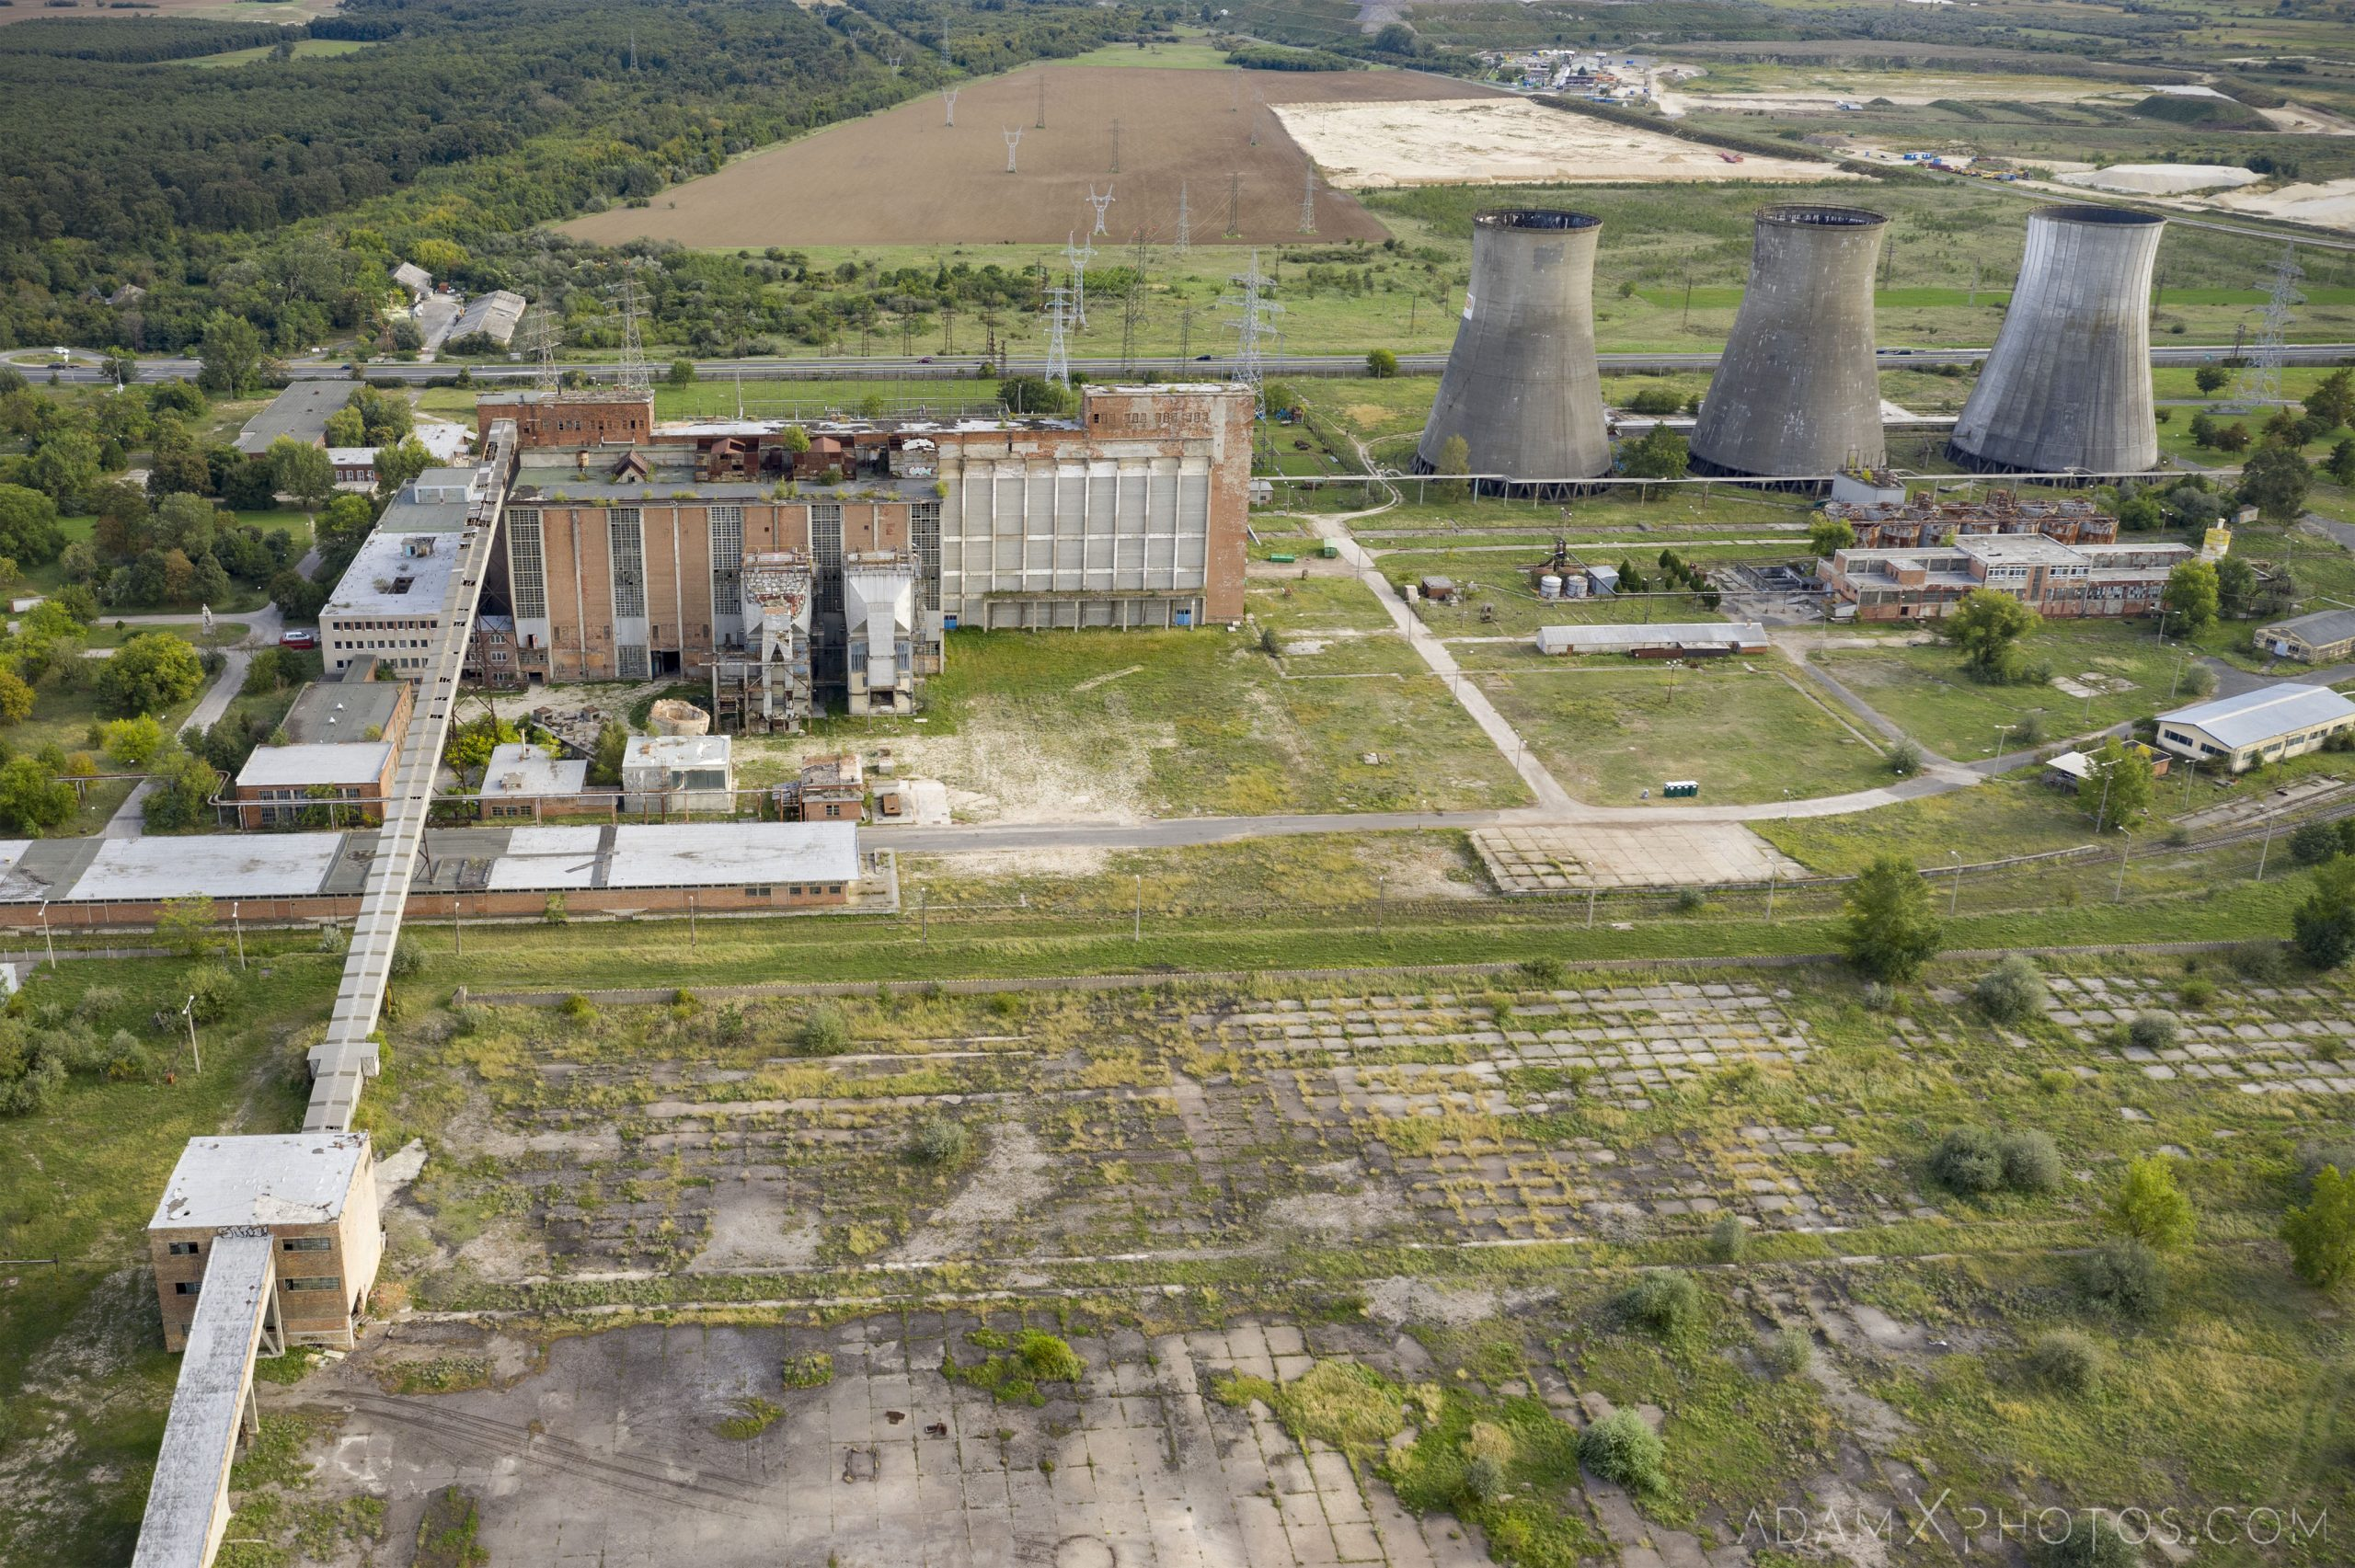 Bladerunner Blade Runner 2049 Powerplant Inota Shephard's Power Plant Hungary Adam X Urbex Urban Exploration Drone aerial view cooling towers Access 2018 Abandoned decay ruins lost forgotten derelict location creepy haunting eerie security